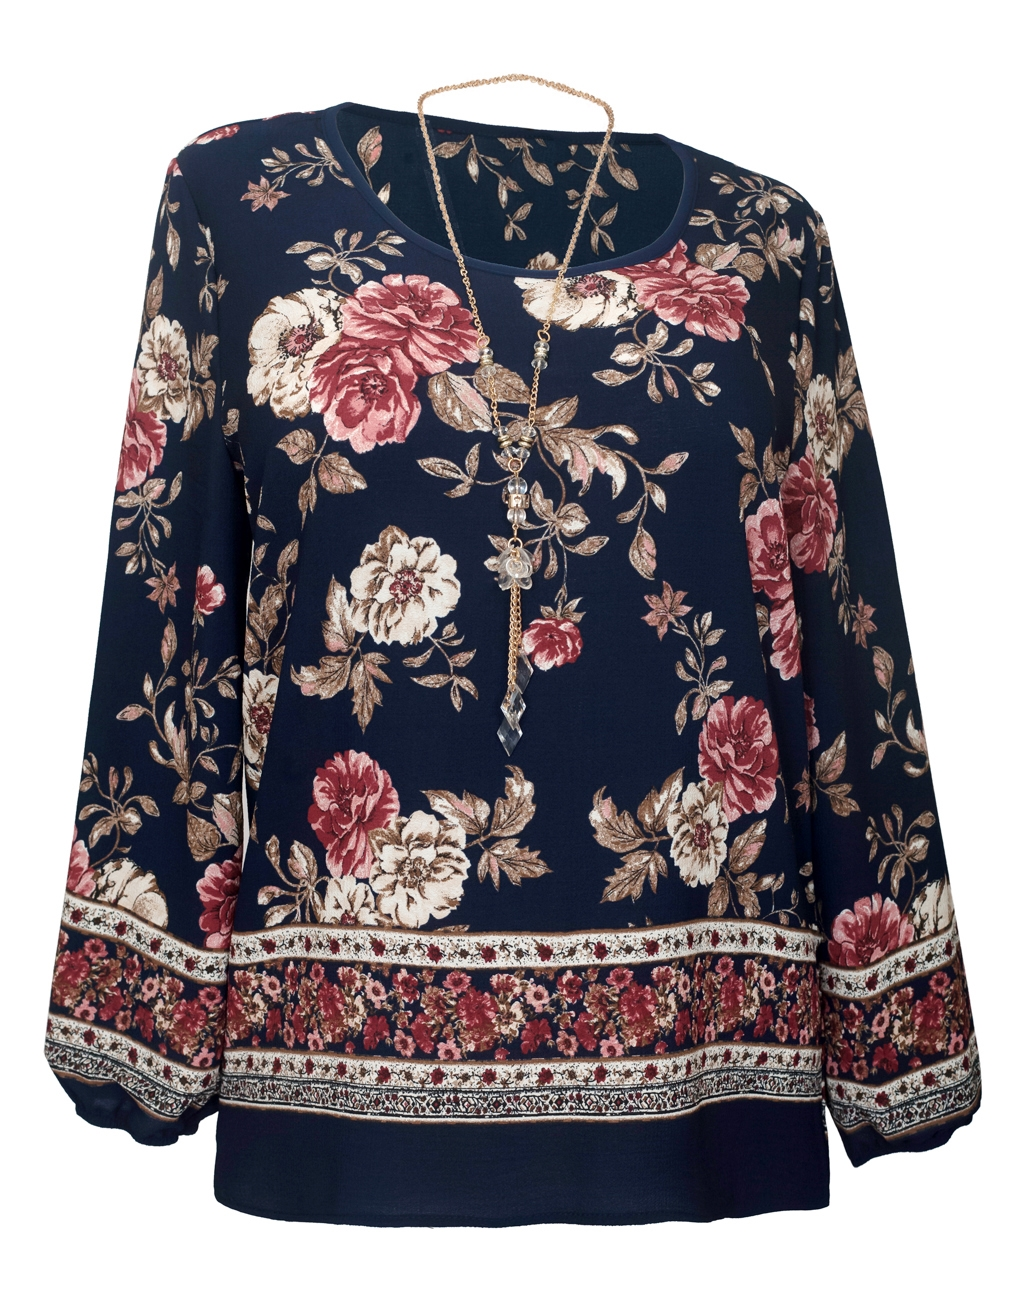 Plus Size Long Sleeve Top Navy Floral Print